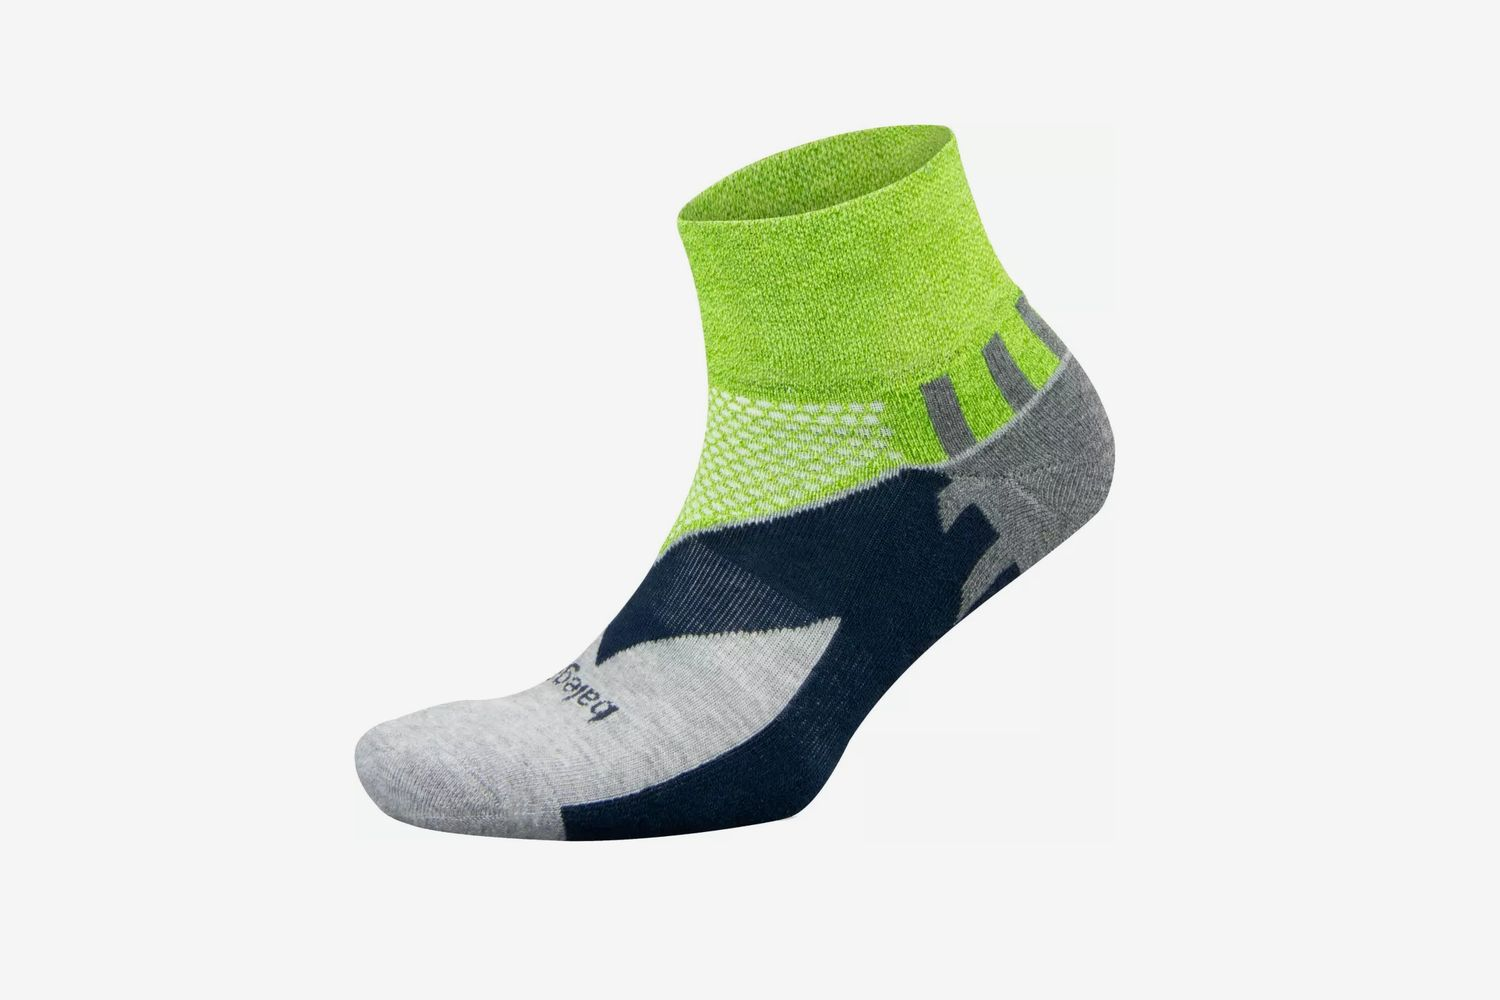 Enduro V-Tech Quarter Running Socks